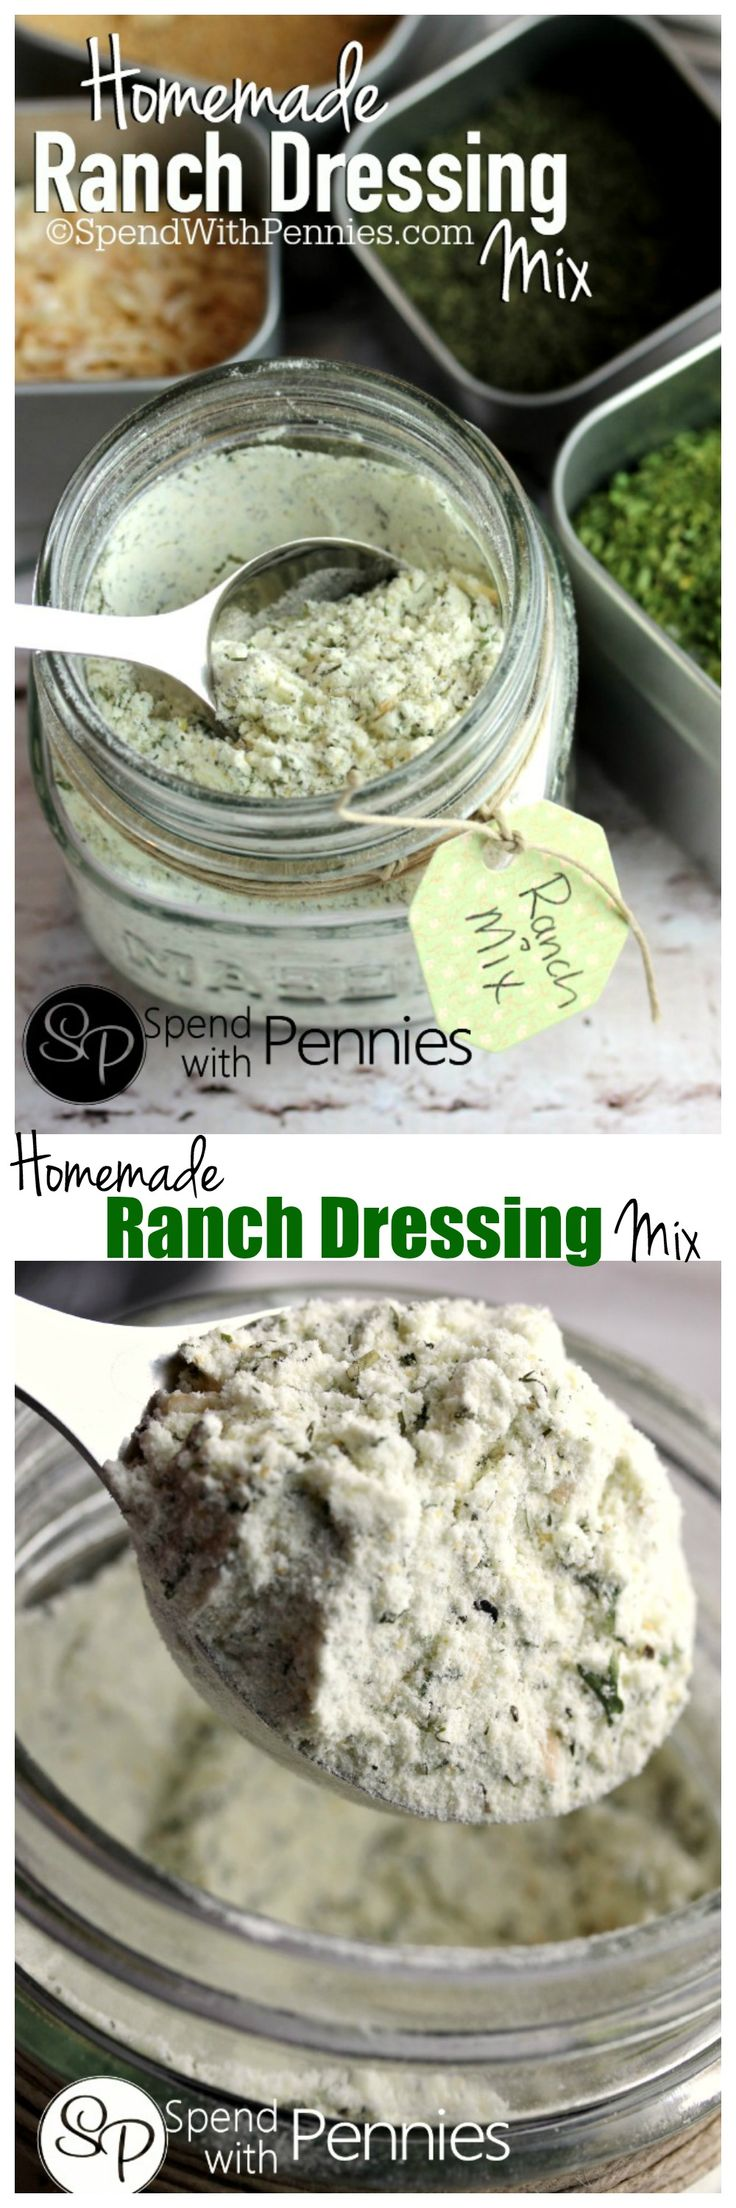 A delicious Homemade Ranch Dressing Mix.  Simple to make, contains no MSG and is perfect in dressings and dips or to replace mix